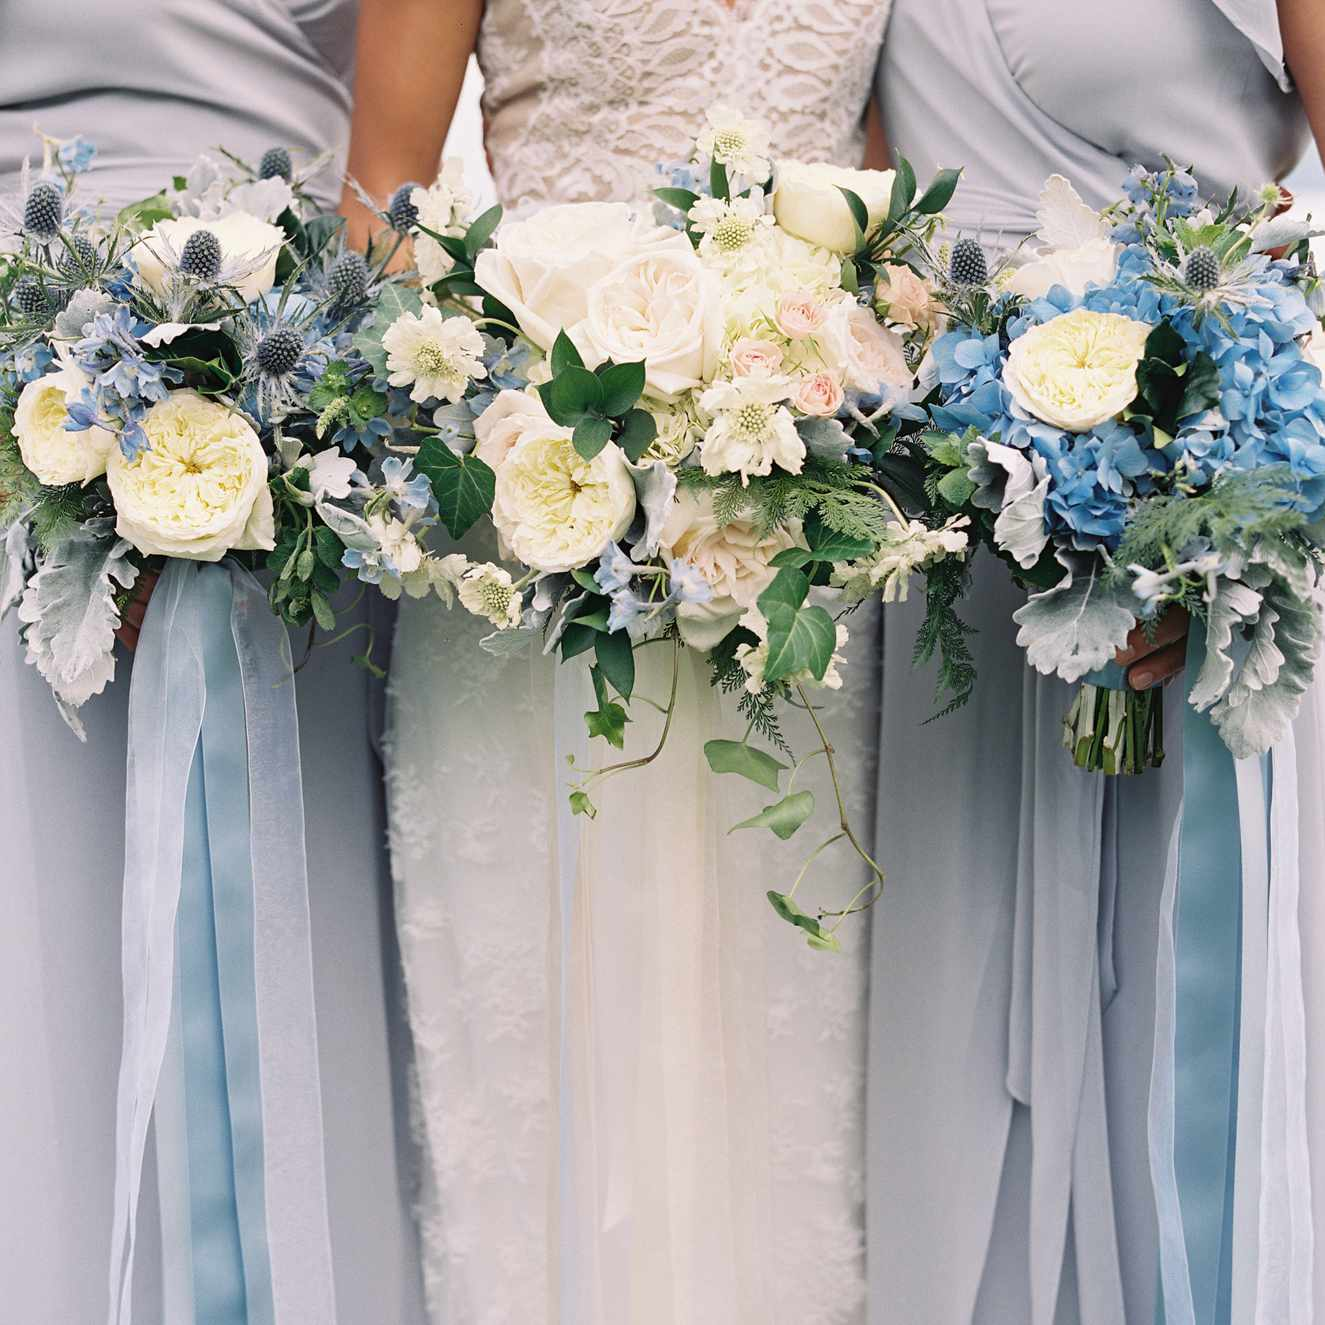 Bride with two bridesmaids holding blue and white bouquets of garden roses, thistle, hydrangea, scabiosa, florabunda roses, dusty miller, ivy, painted fern, delphinium, and flowering mint